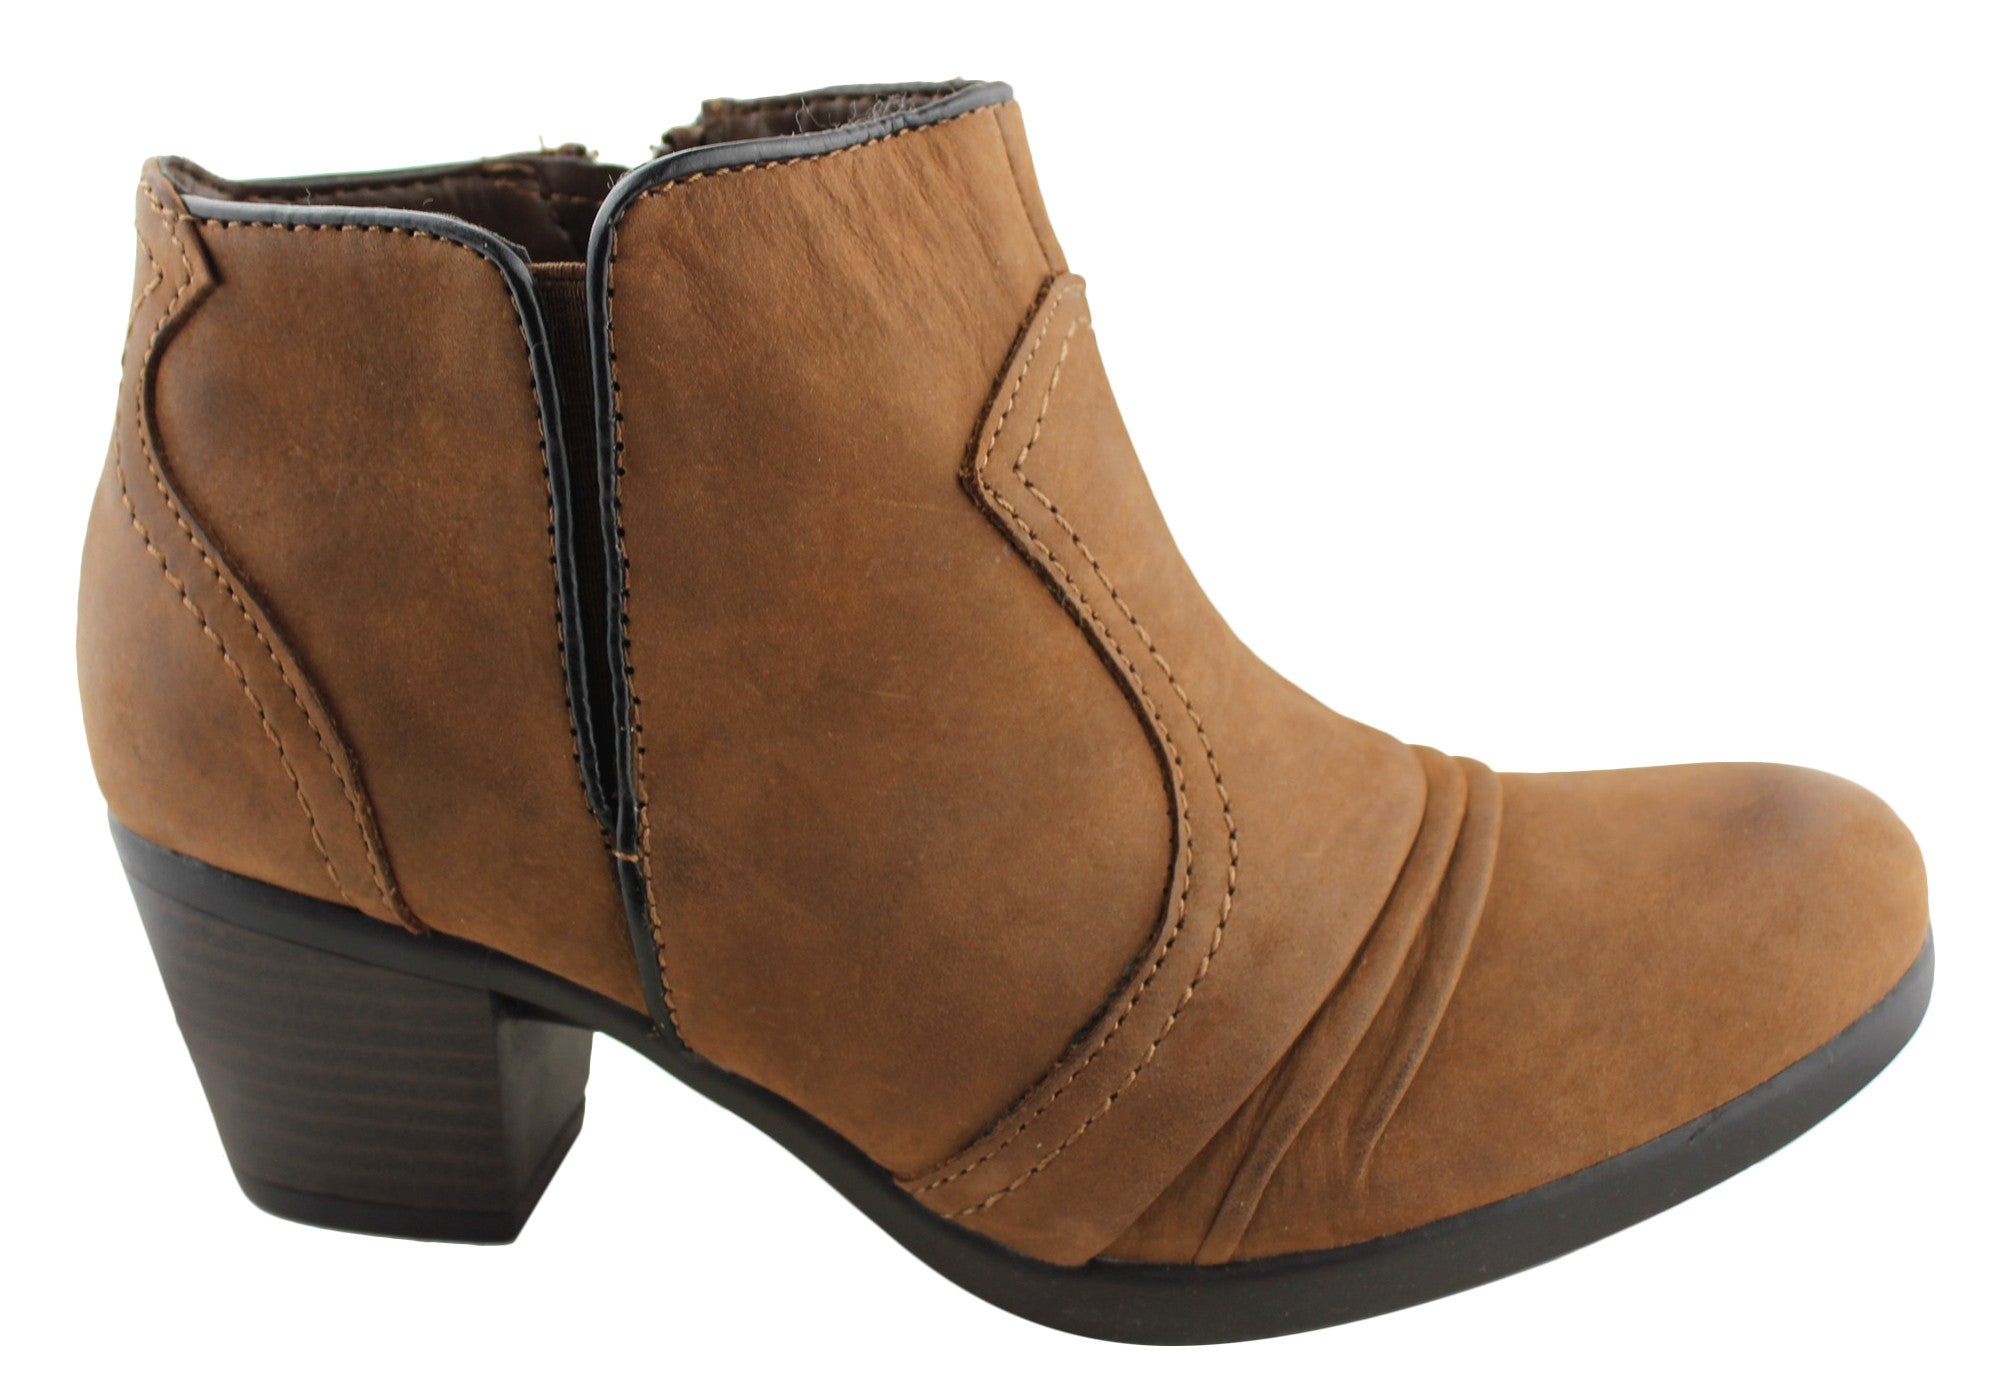 comfortable boot an fit in the nicershoes boots most reviewed ankle rated and best of comforter